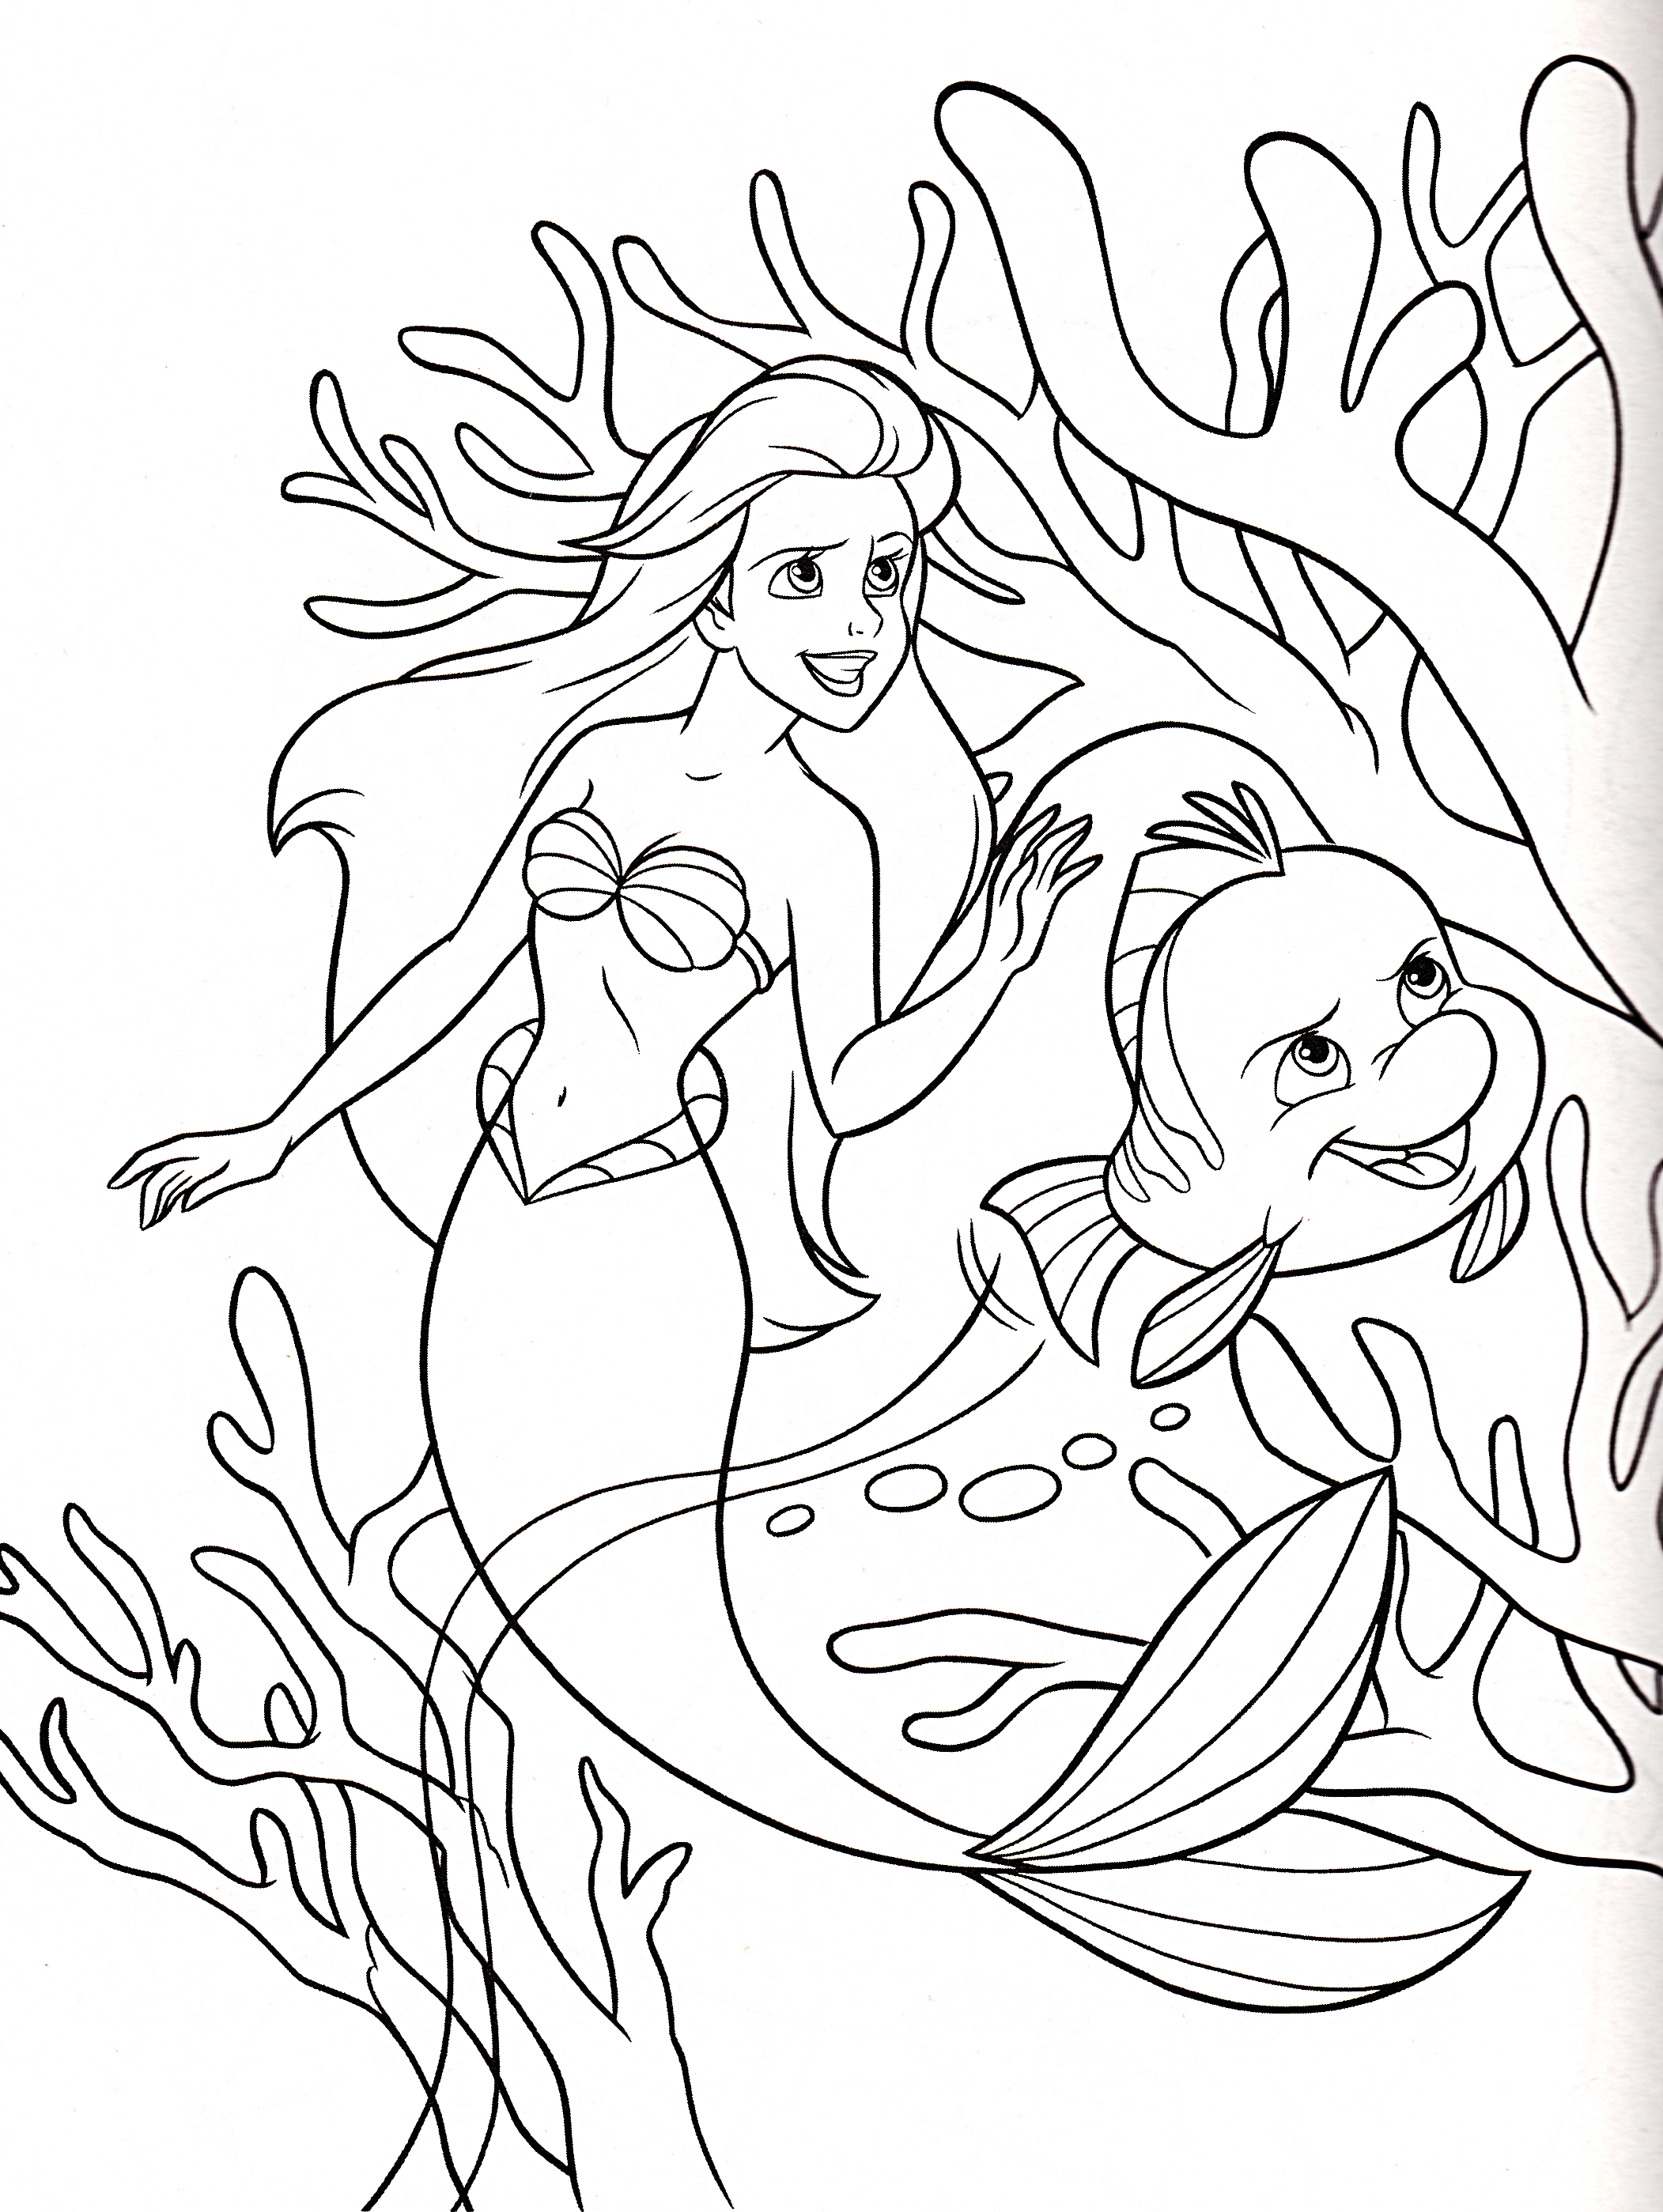 disney princess characters coloring pages - photo#25